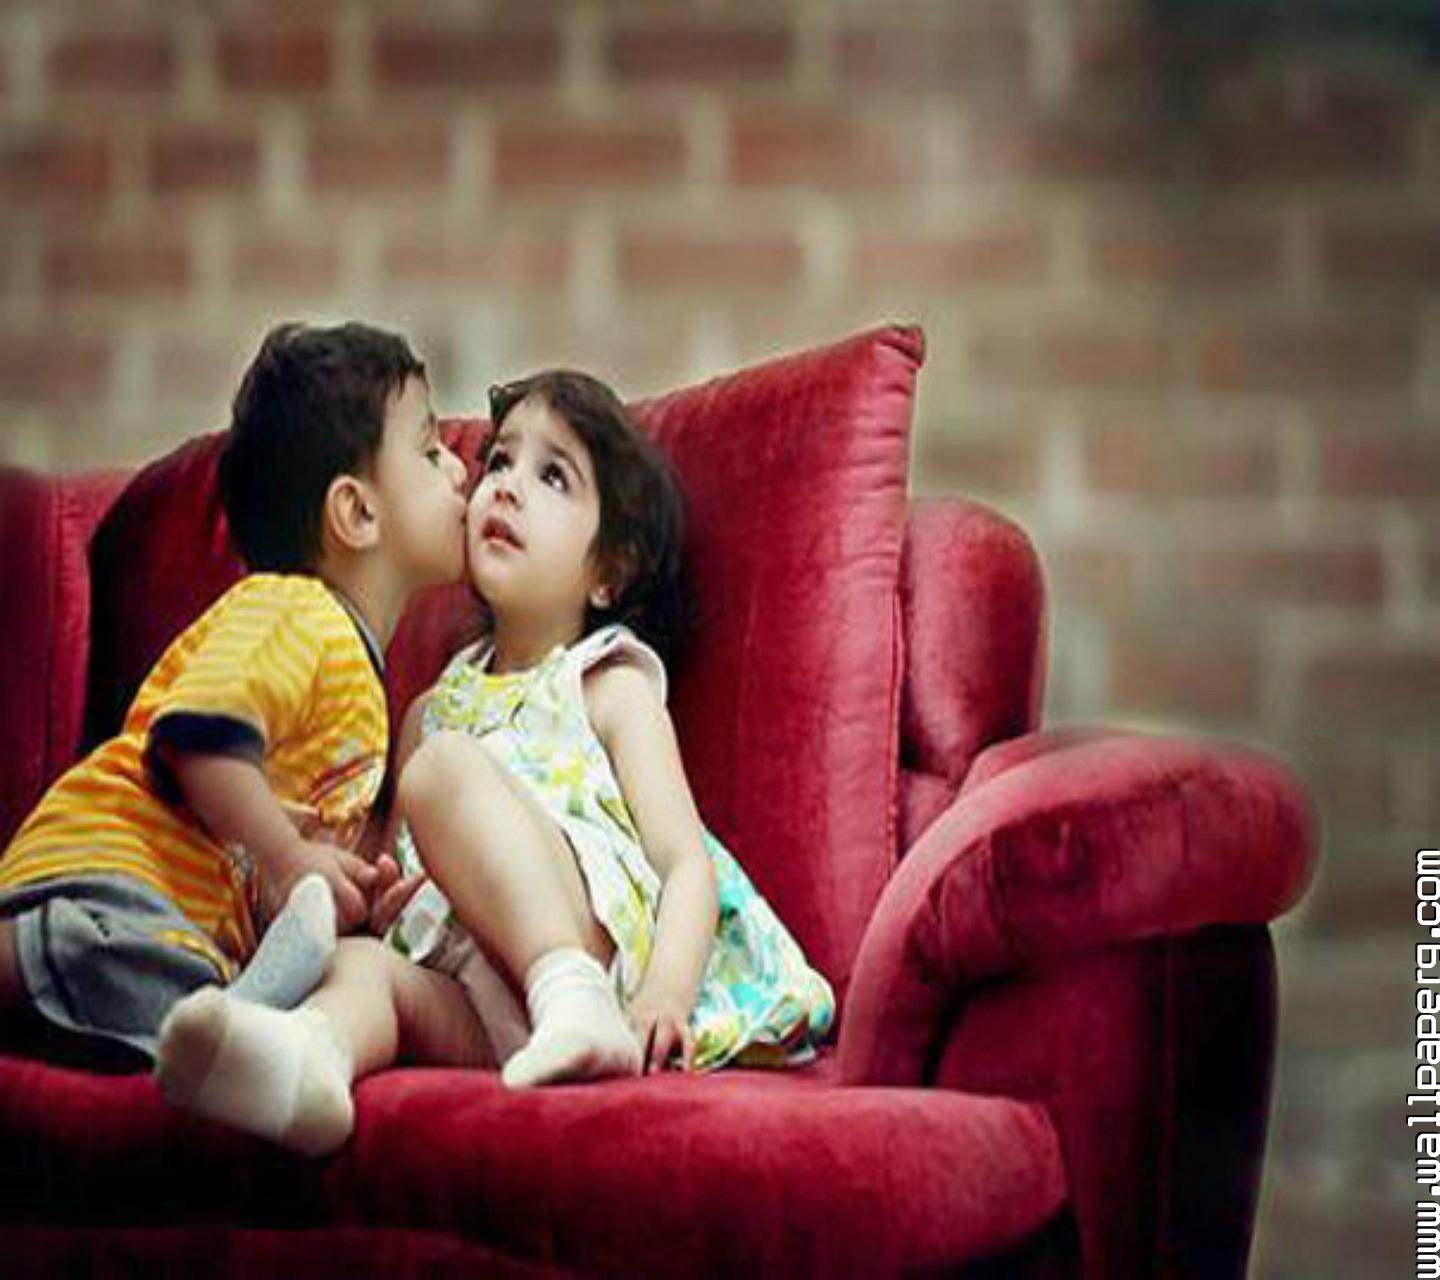 Love Baby couple Wallpaper Hd : cute Baby Love Kiss www.pixshark.com - Images Galleries With A Bite!